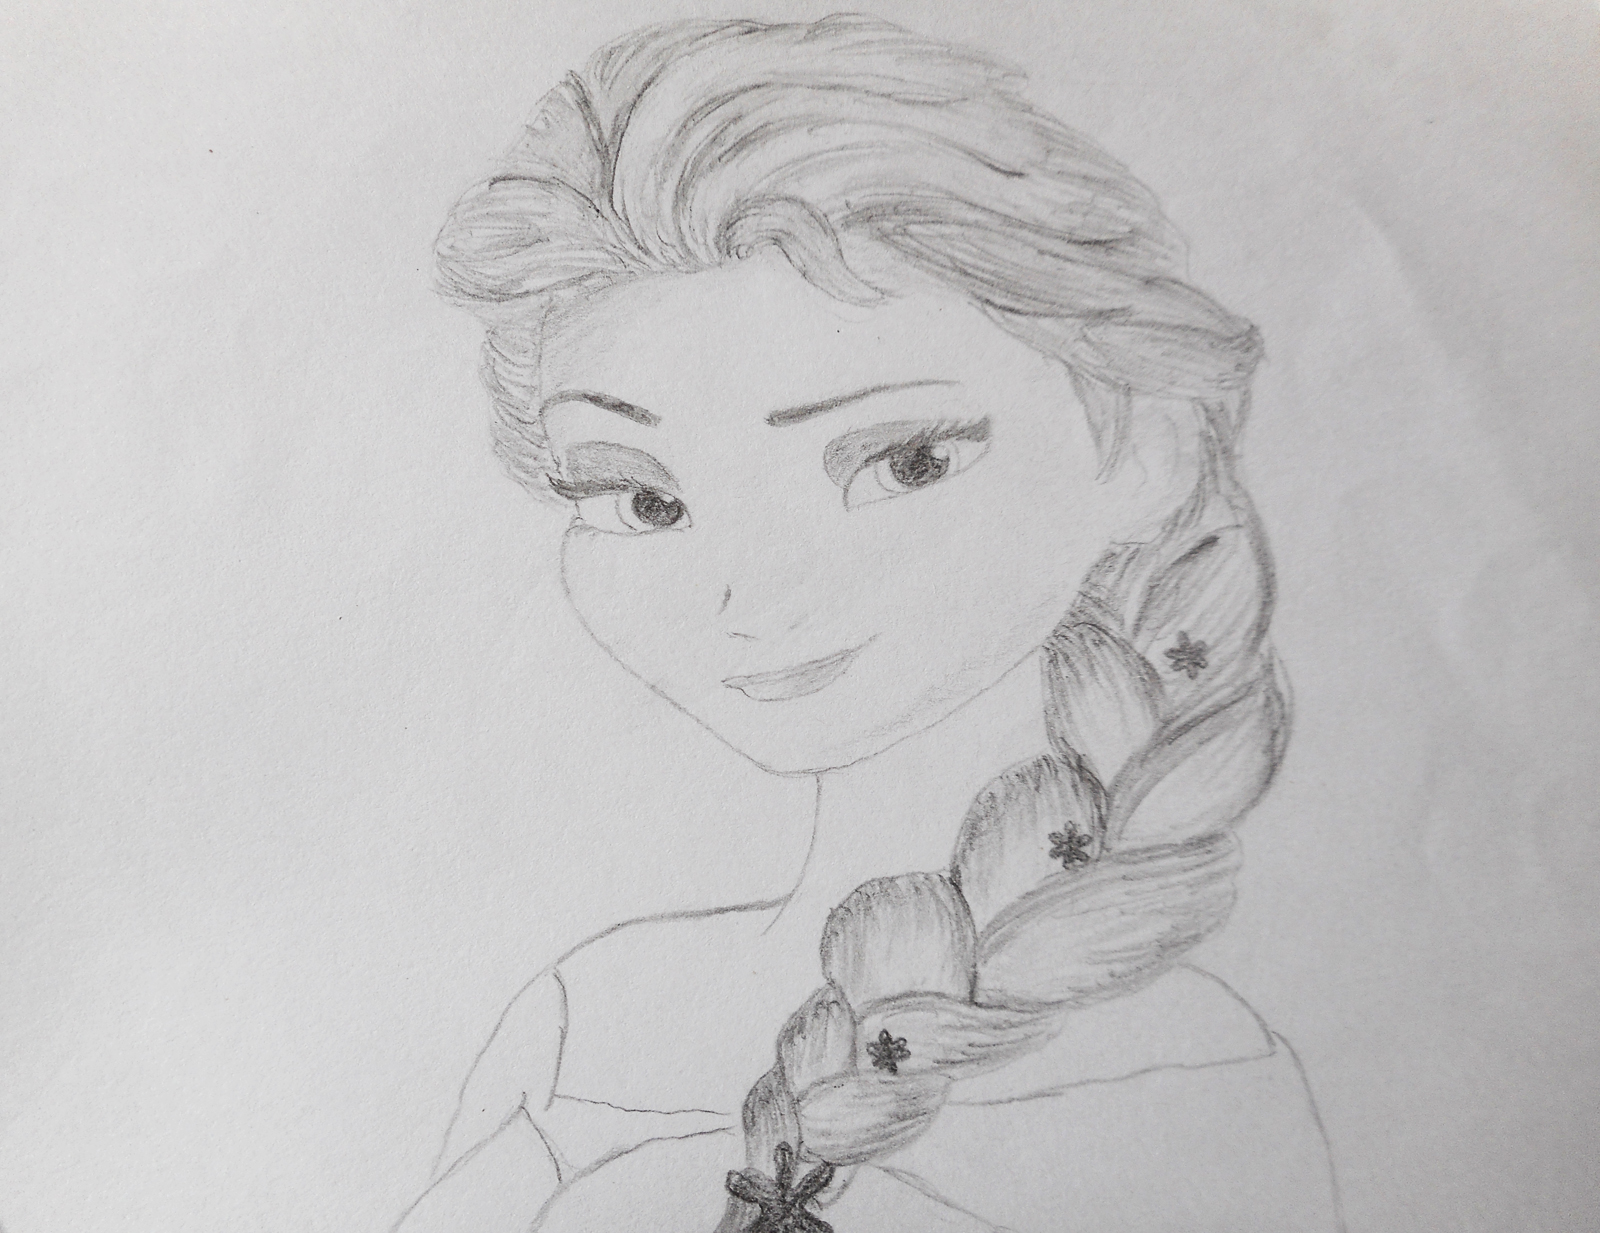 Elsa Drawing Disney Princess Photo 38320793 Fanpop Princess Elsa Drawing